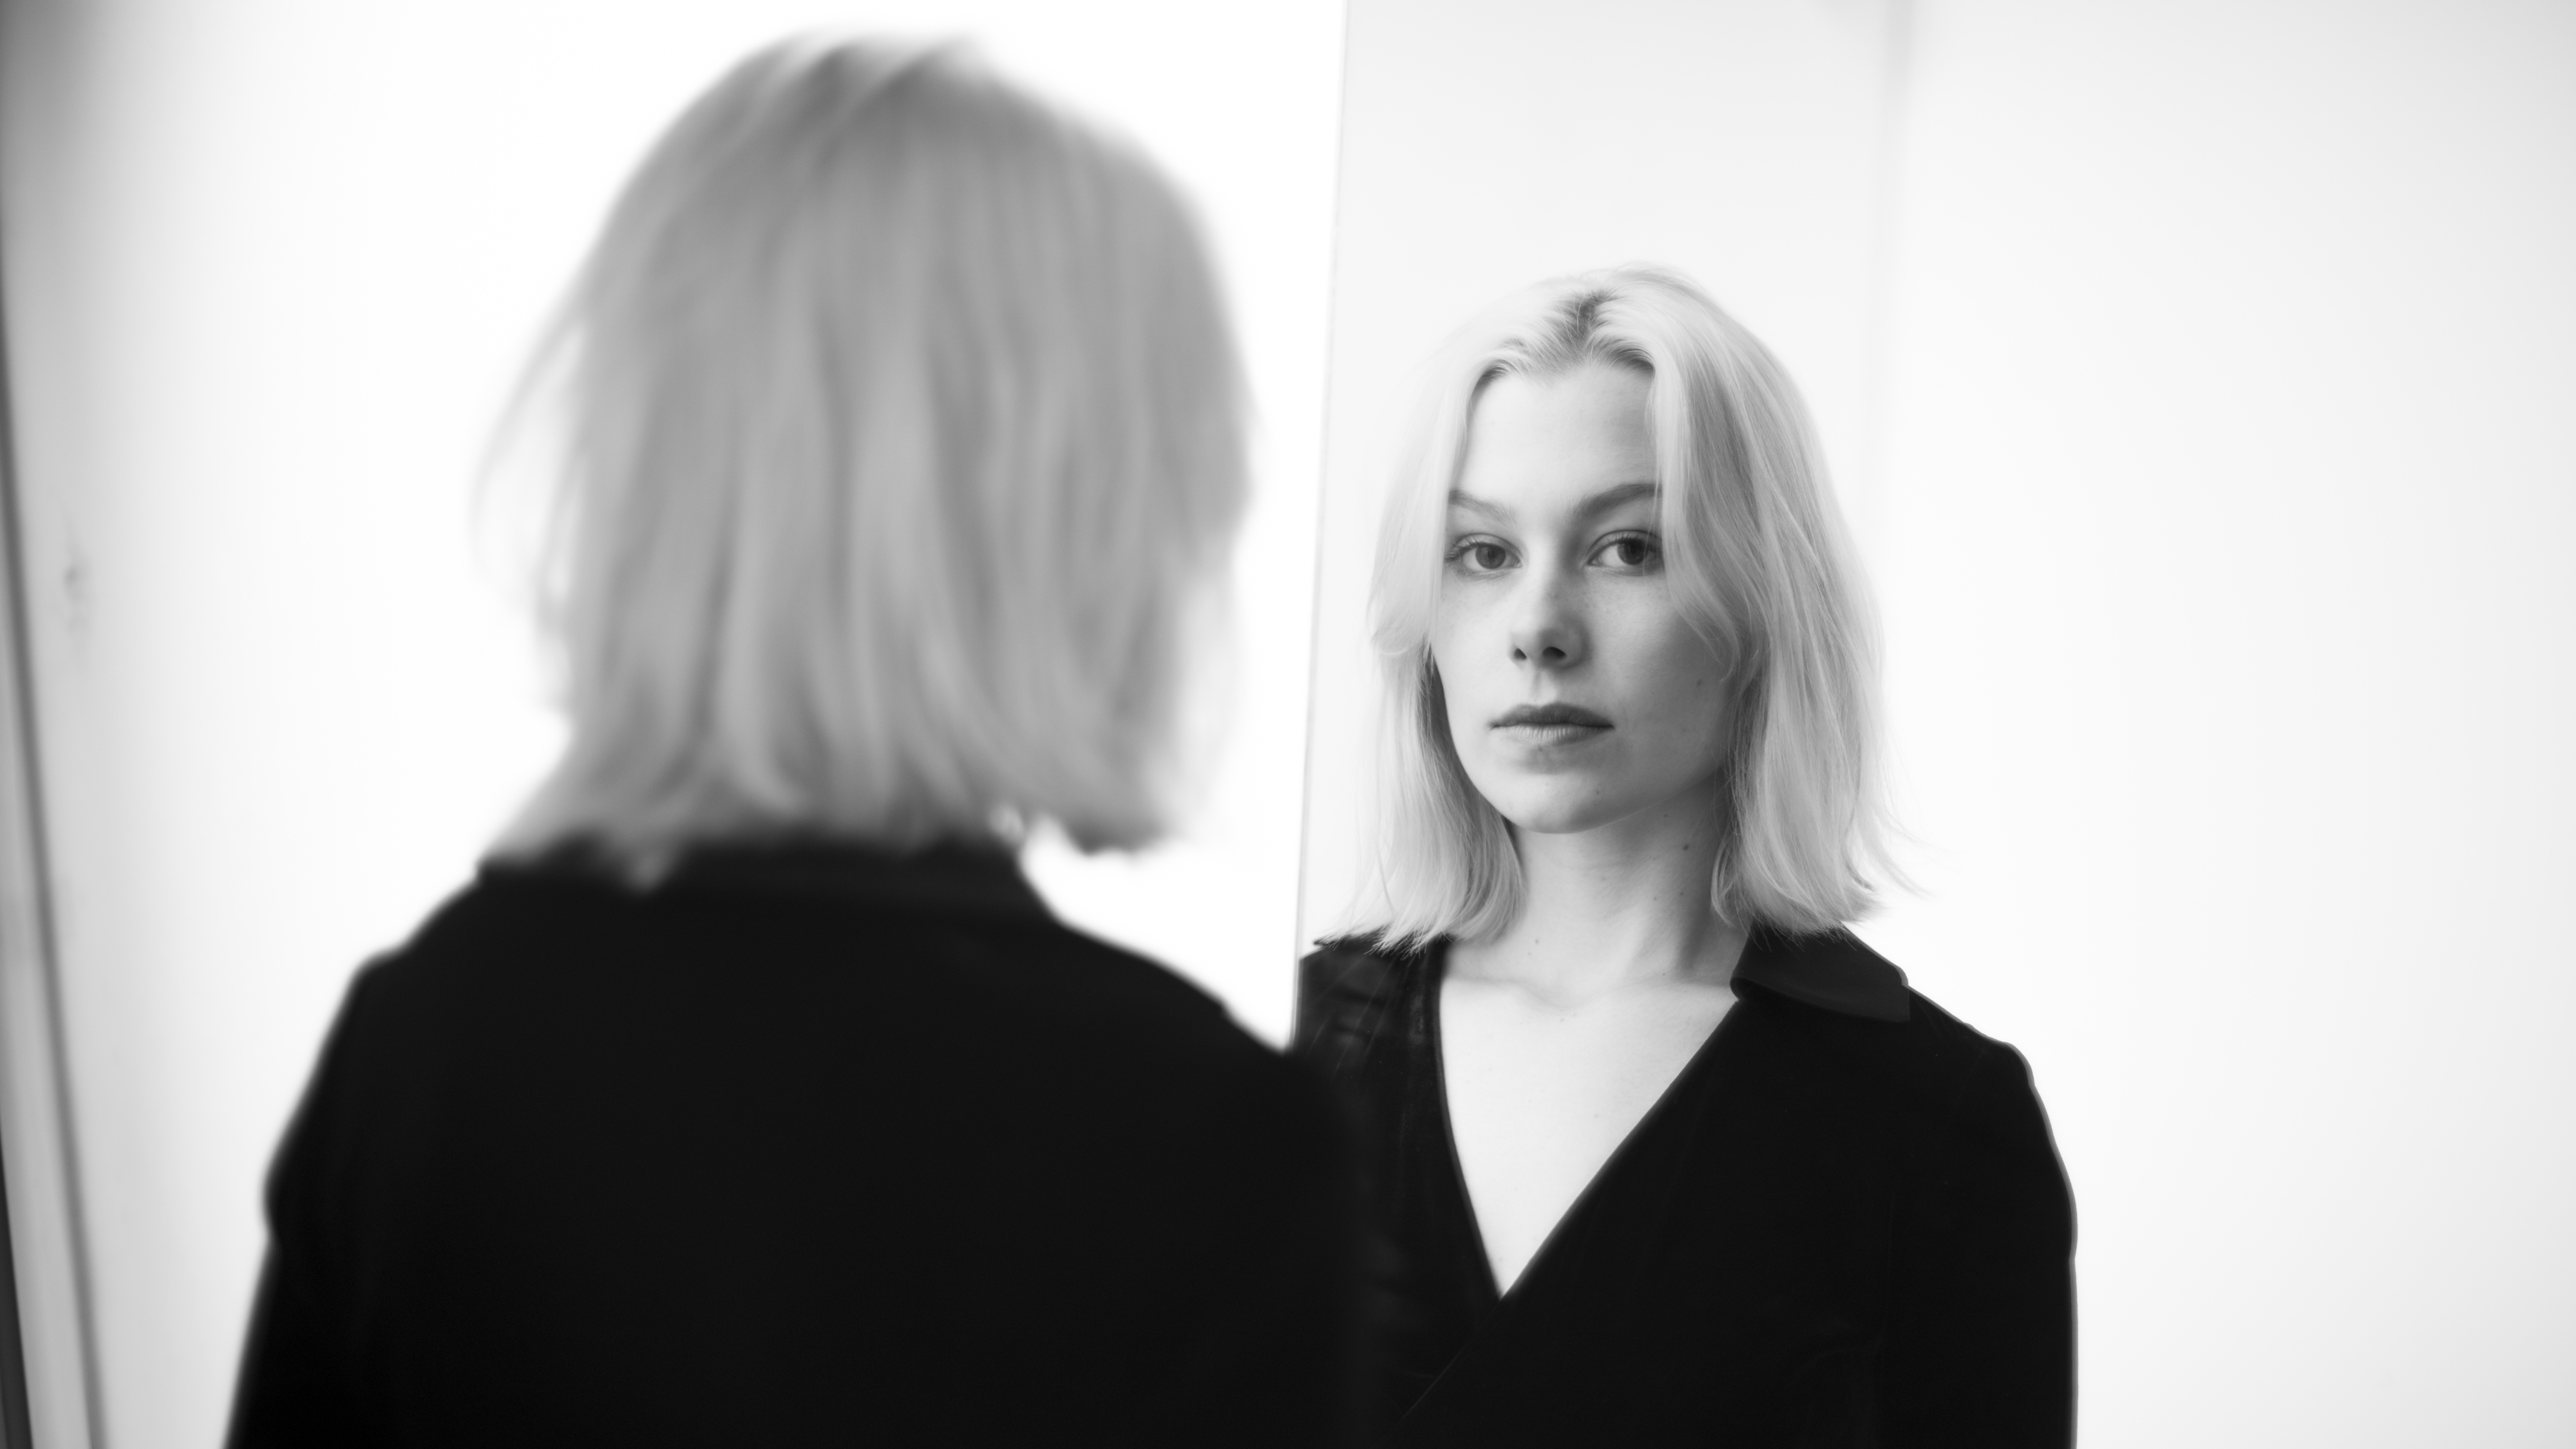 2017's Best New Artist Might Just Be Phoebe Bridgers